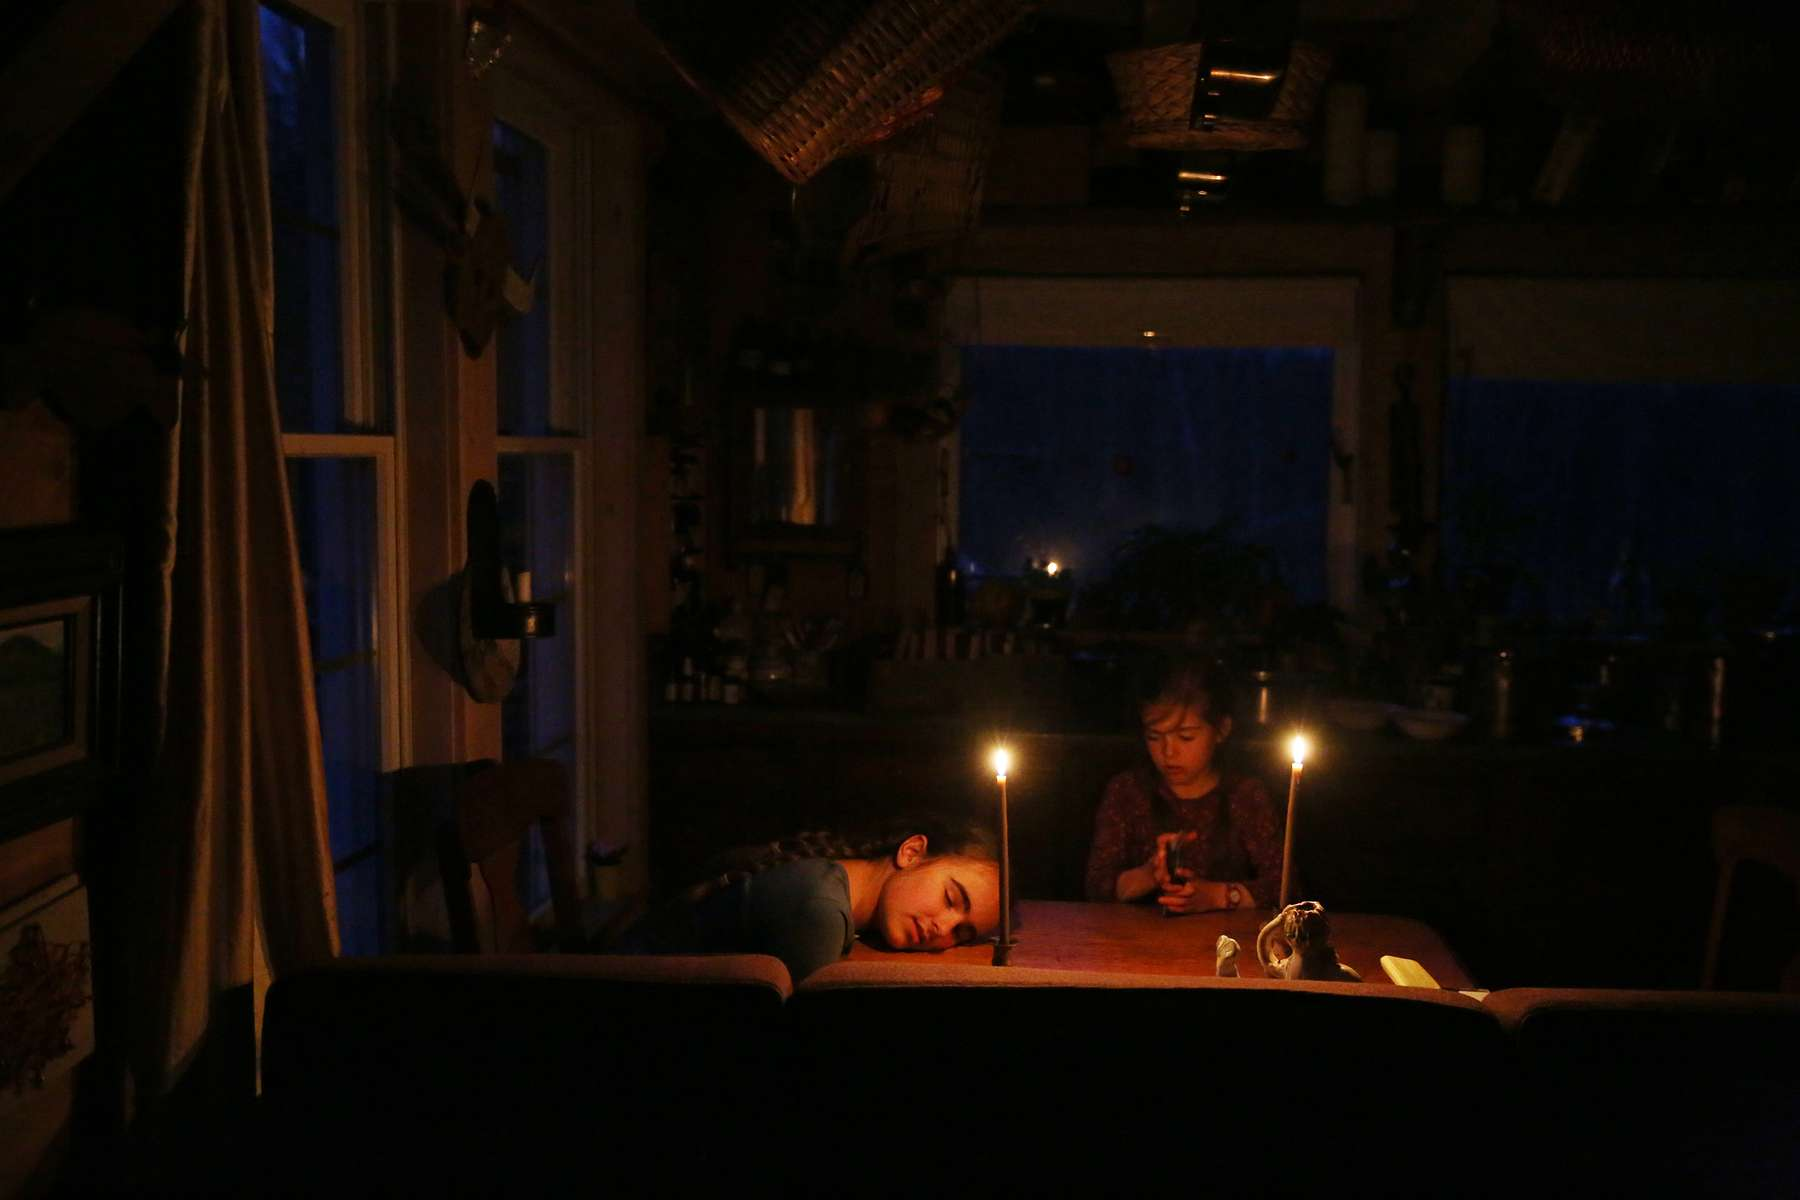 Belfast, ME, 04/29/2019 --  After a long day Etta Hughes, 11, rests her head on the kitchen table as she and her sister, Isla, 7, play a card game by candle light at their permaculture homestead in Maine. The Hughes family doesn't use electricity which is part of their petroleum-free, off-the-grid community in Maine called The Possibility Alliance.